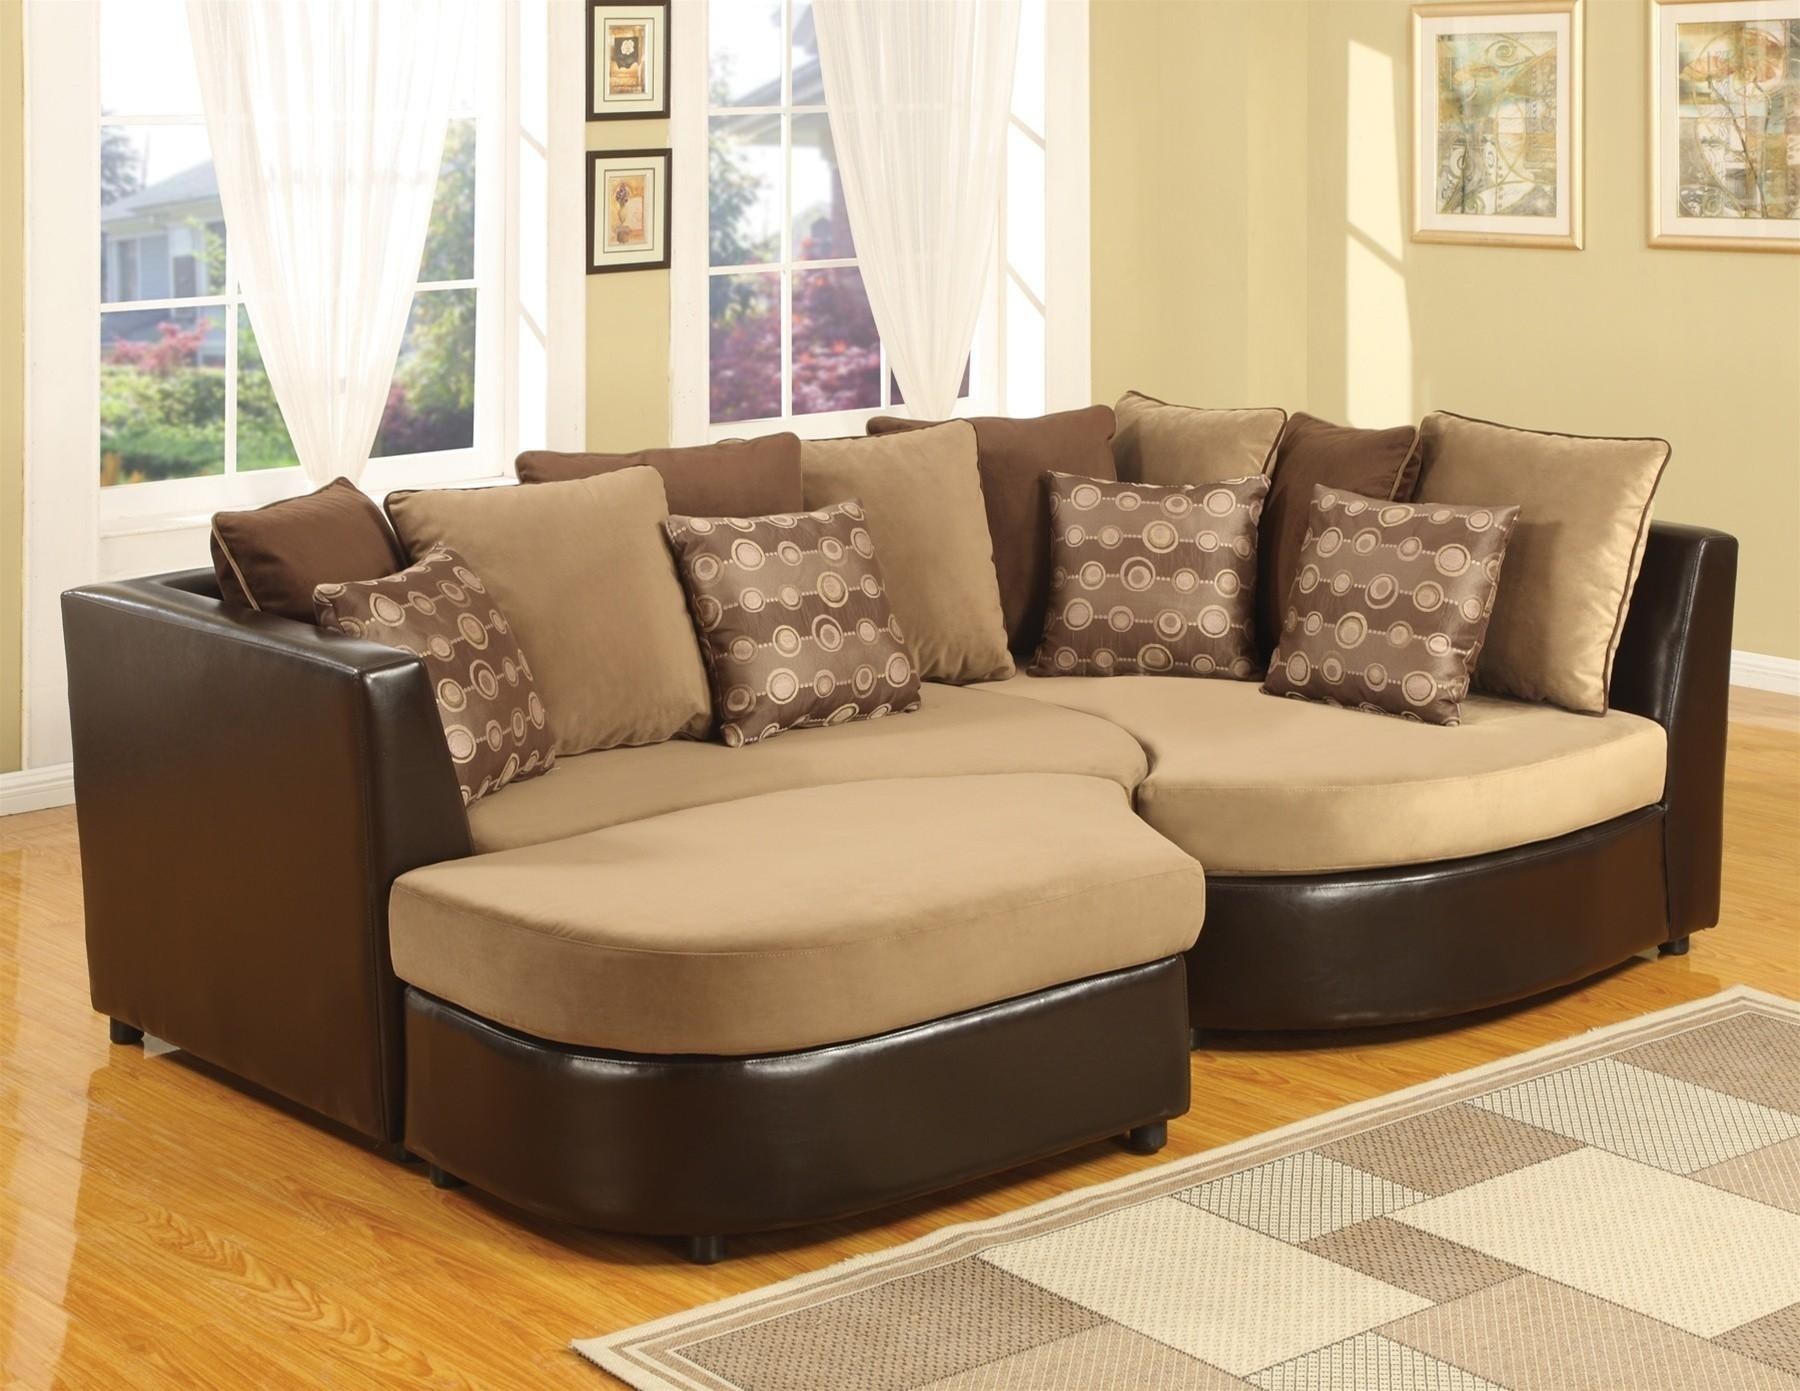 Sofas Center : Oversized Double Sofa Chair And For Staging Regarding Large Sofa Chairs (View 11 of 20)